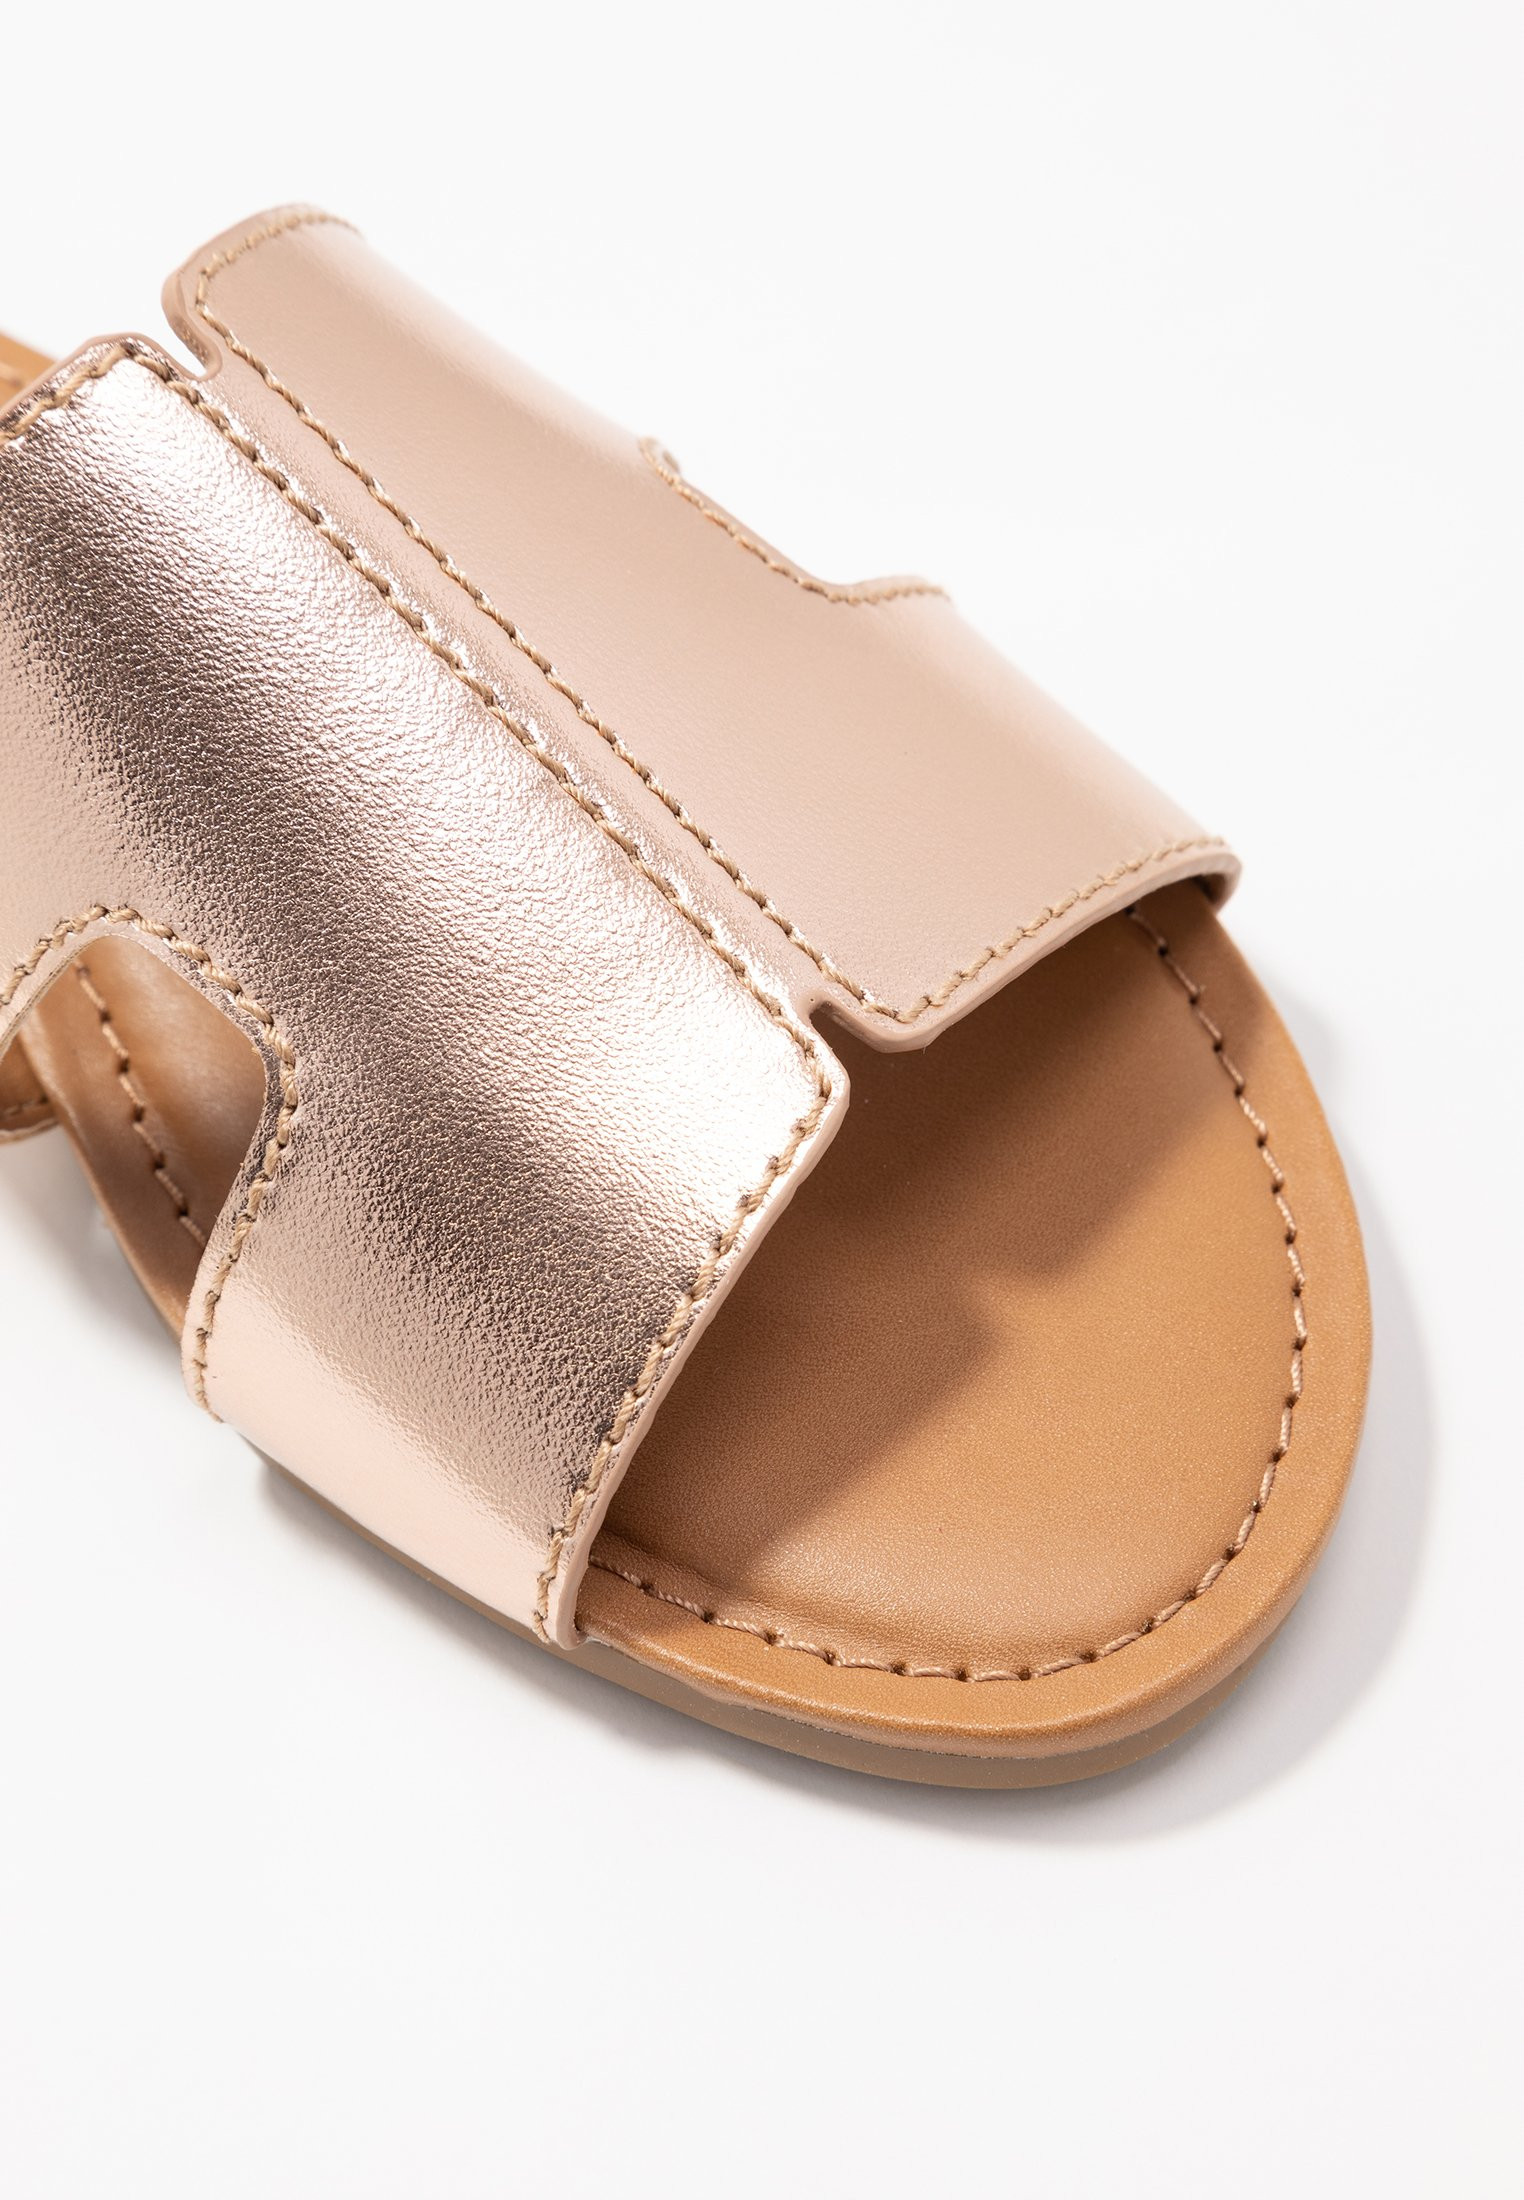 It Temperate Champagne VeganMules Spring Call 0wvmNn8